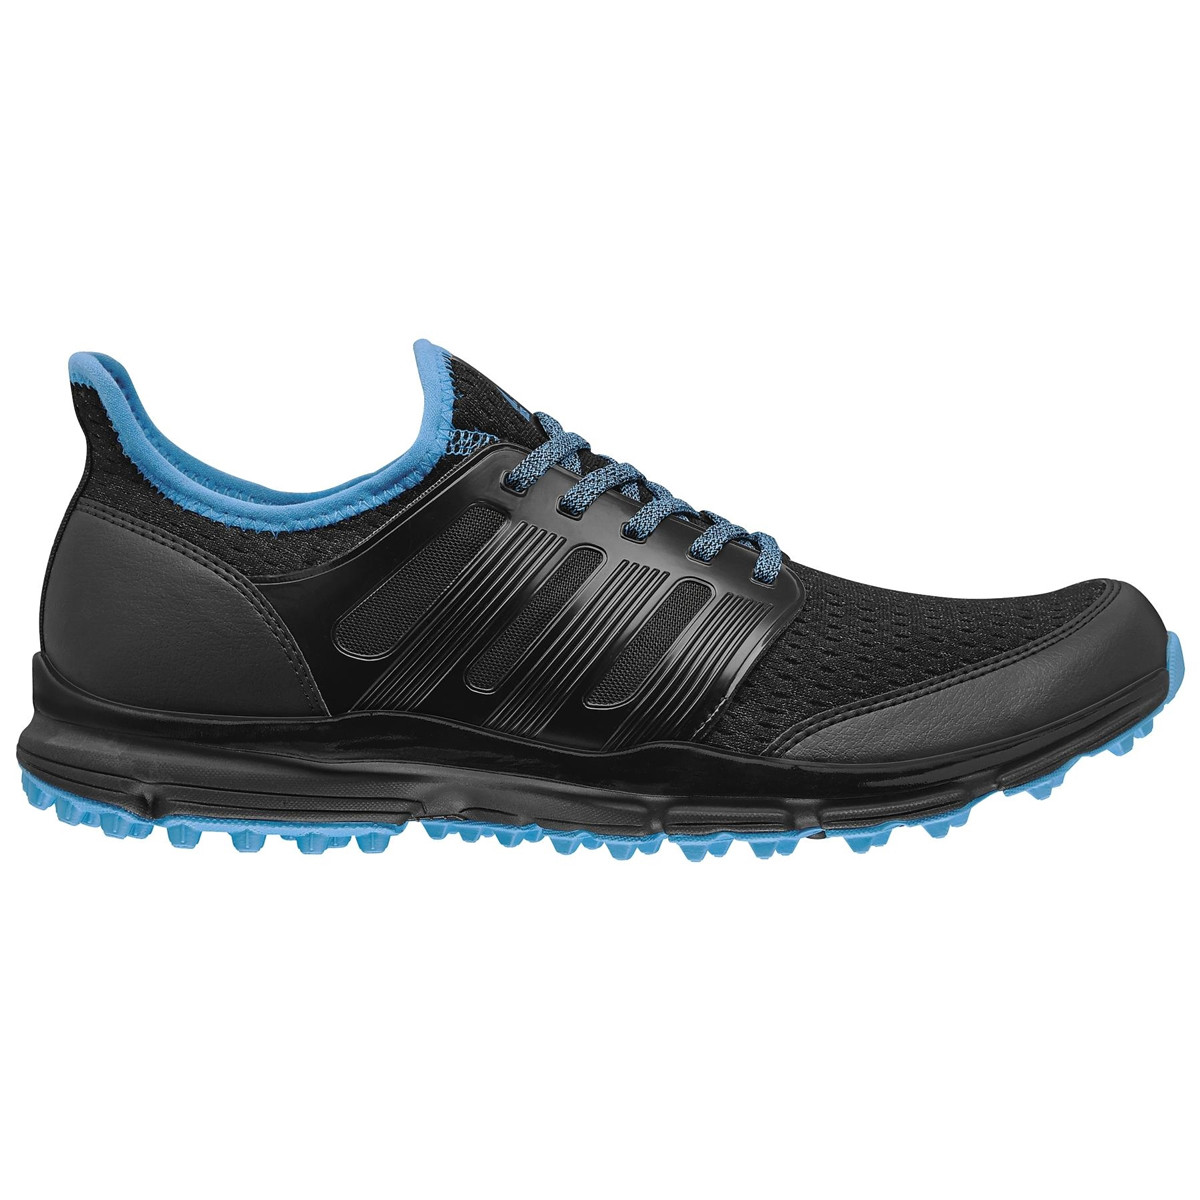 Adidas Climacool Golf Shoes Discount Golf Shoes